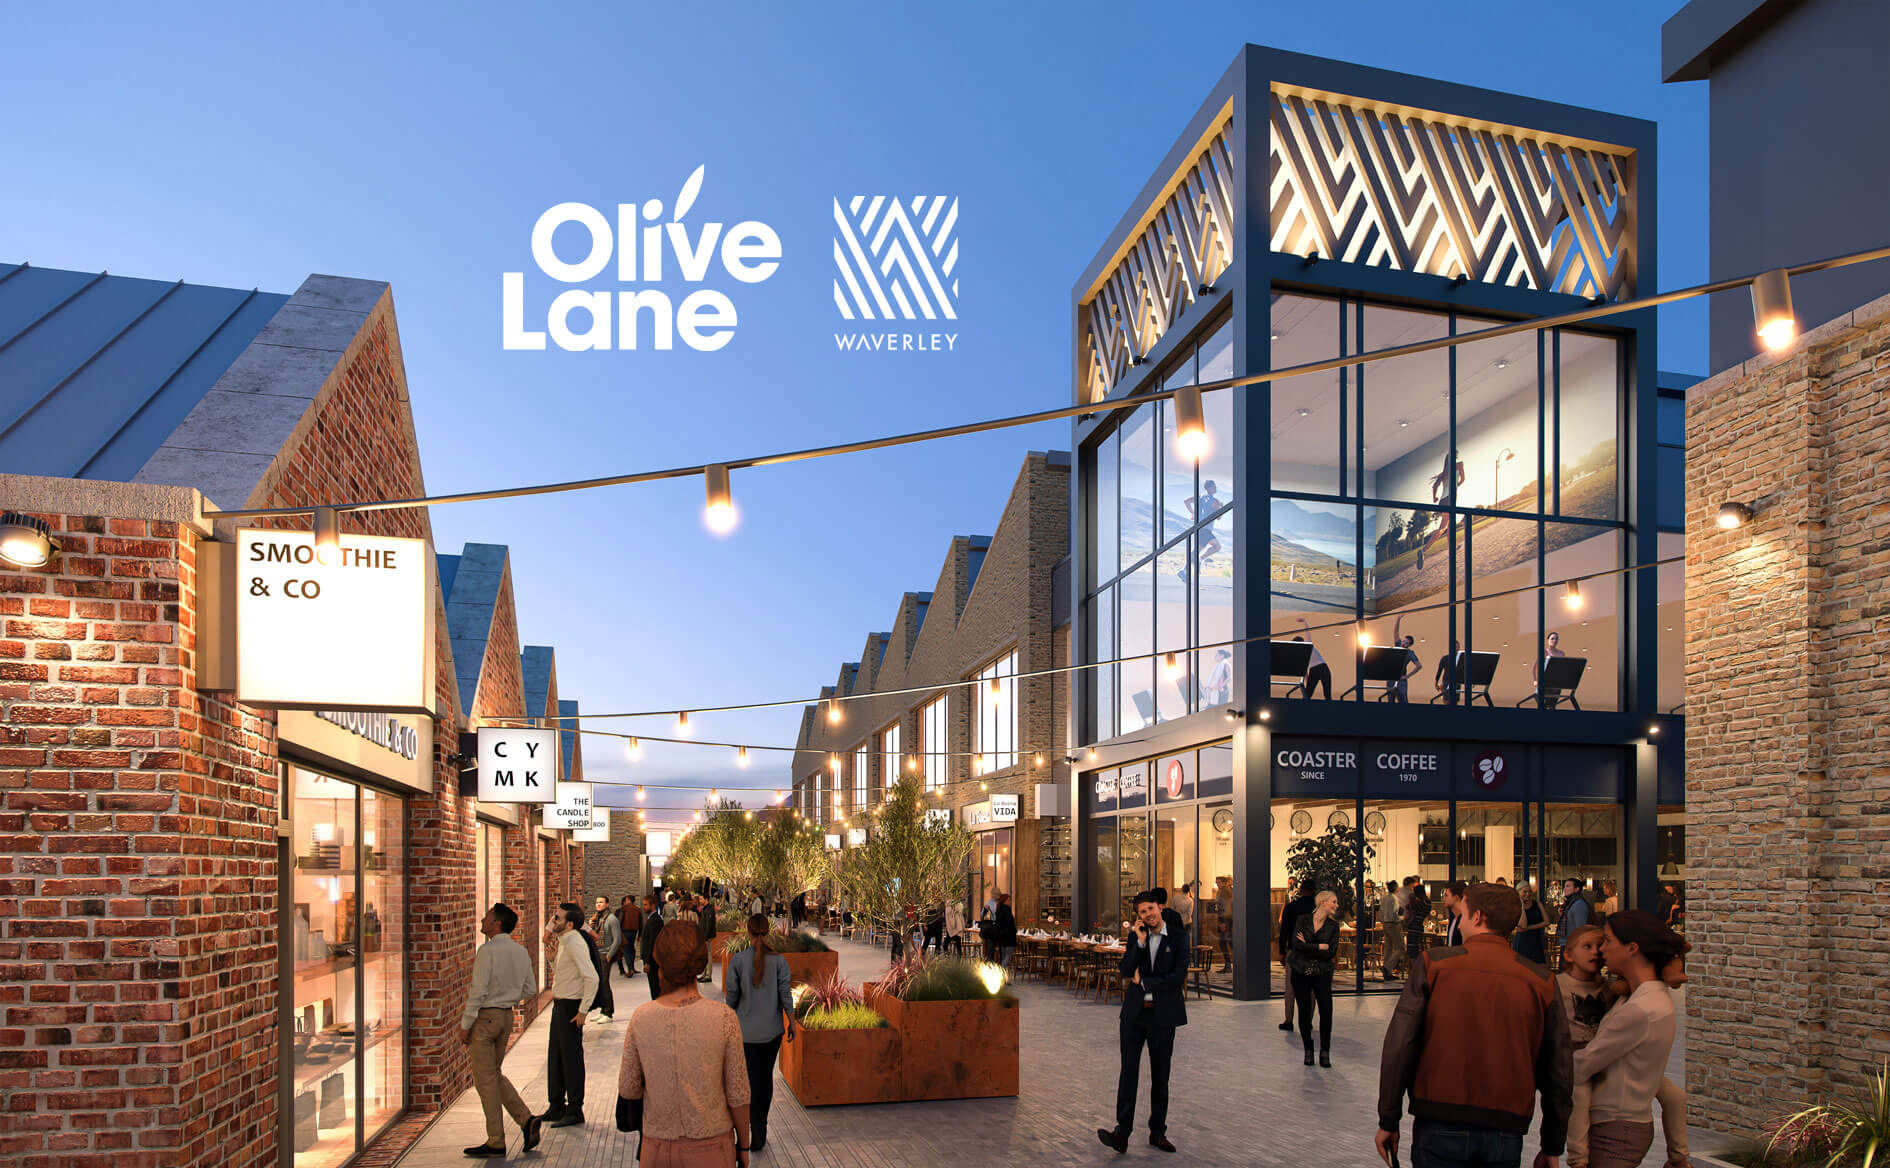 A fist look at Olive Lane 'The Heart of Waverley' 1